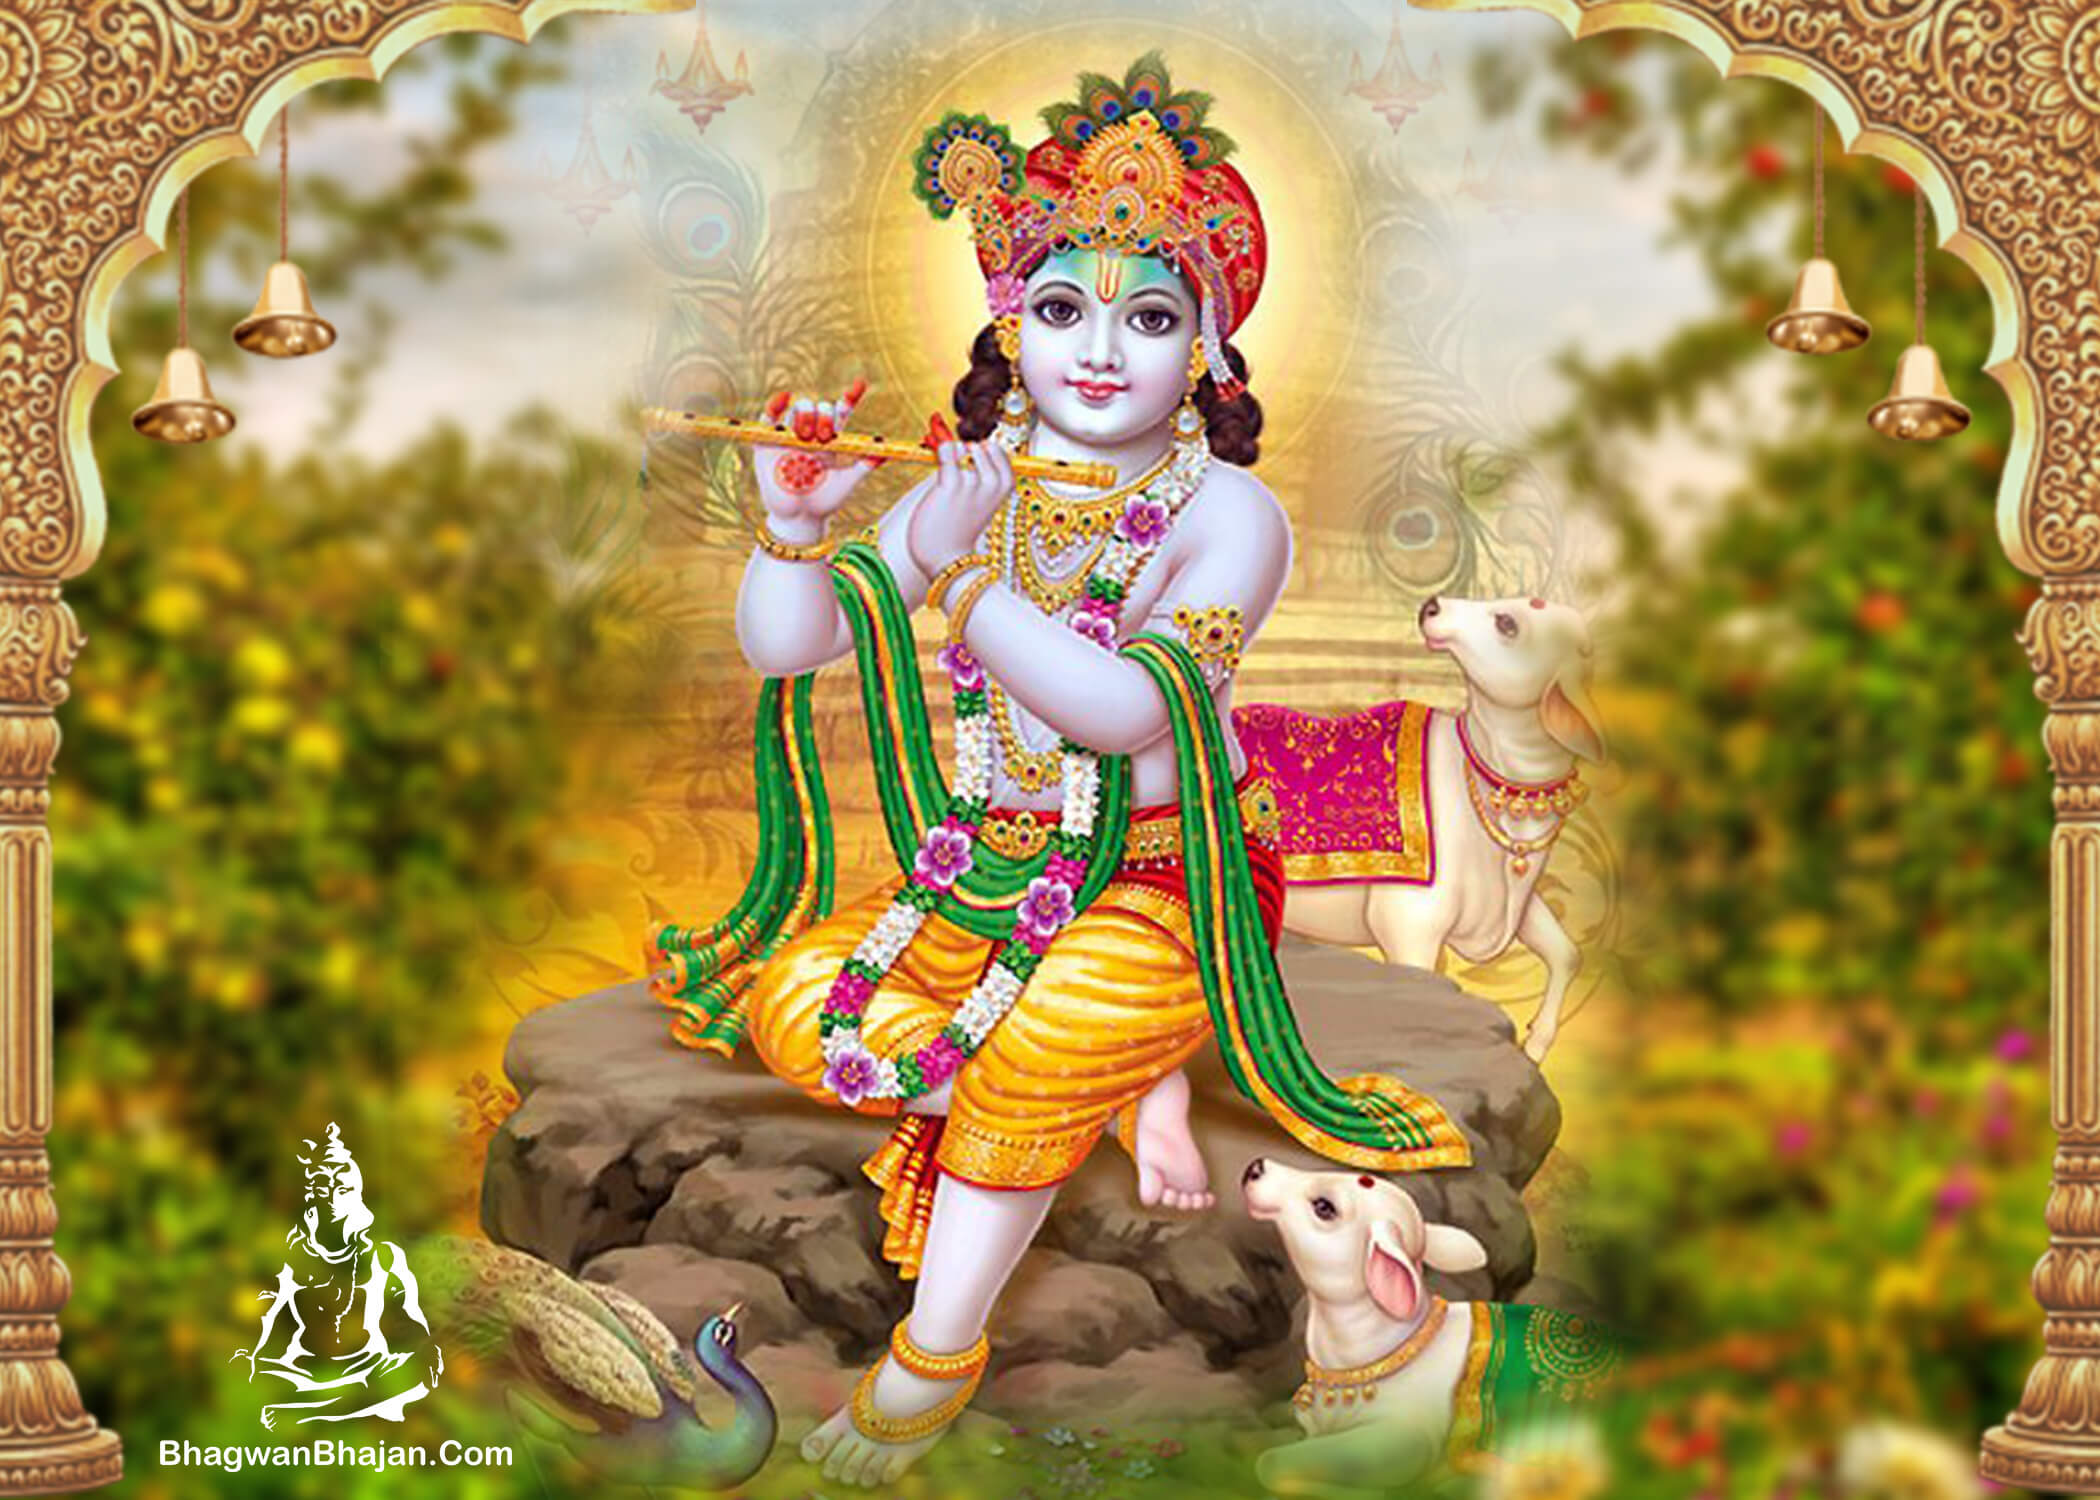 bal gopal shree krishna hd wallapaper